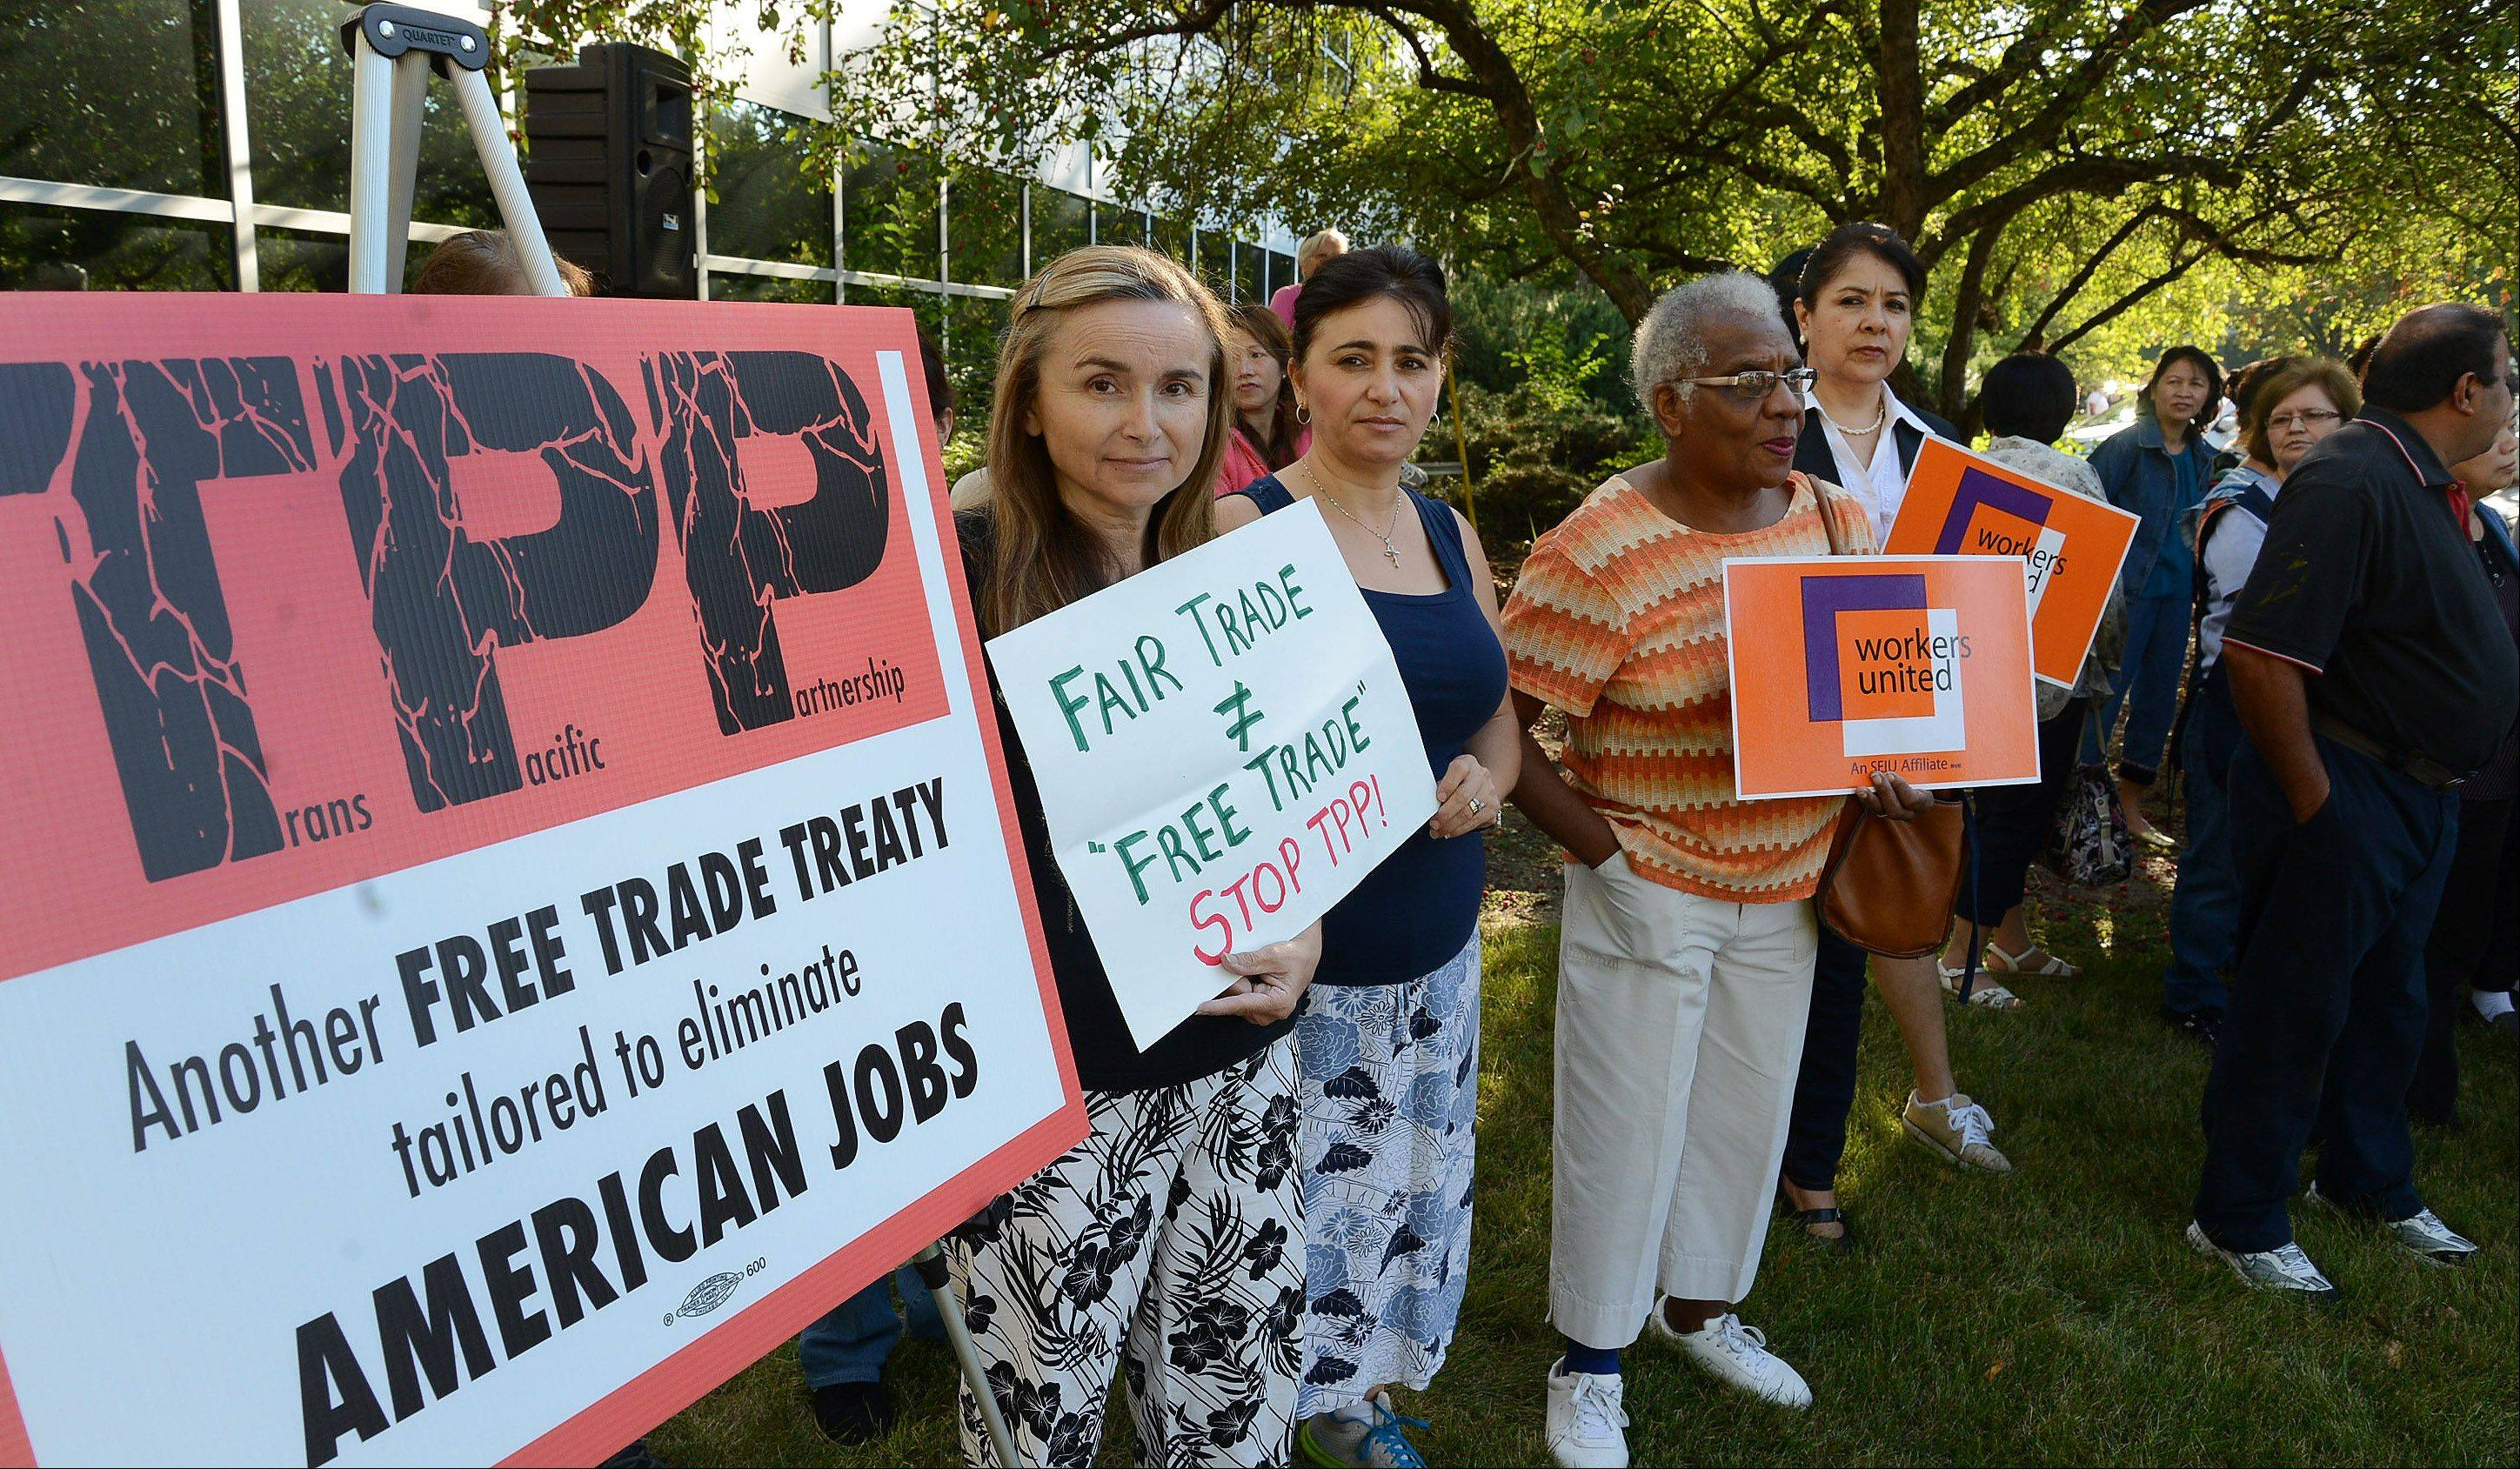 Workers rallied Wednesday in front of the Hart Schaffner & Marx factory in Des Plaines to protest the proposed Trans-Pacific Partnership free trade agreement they say would impact textile and apparel manufacturing jobs.